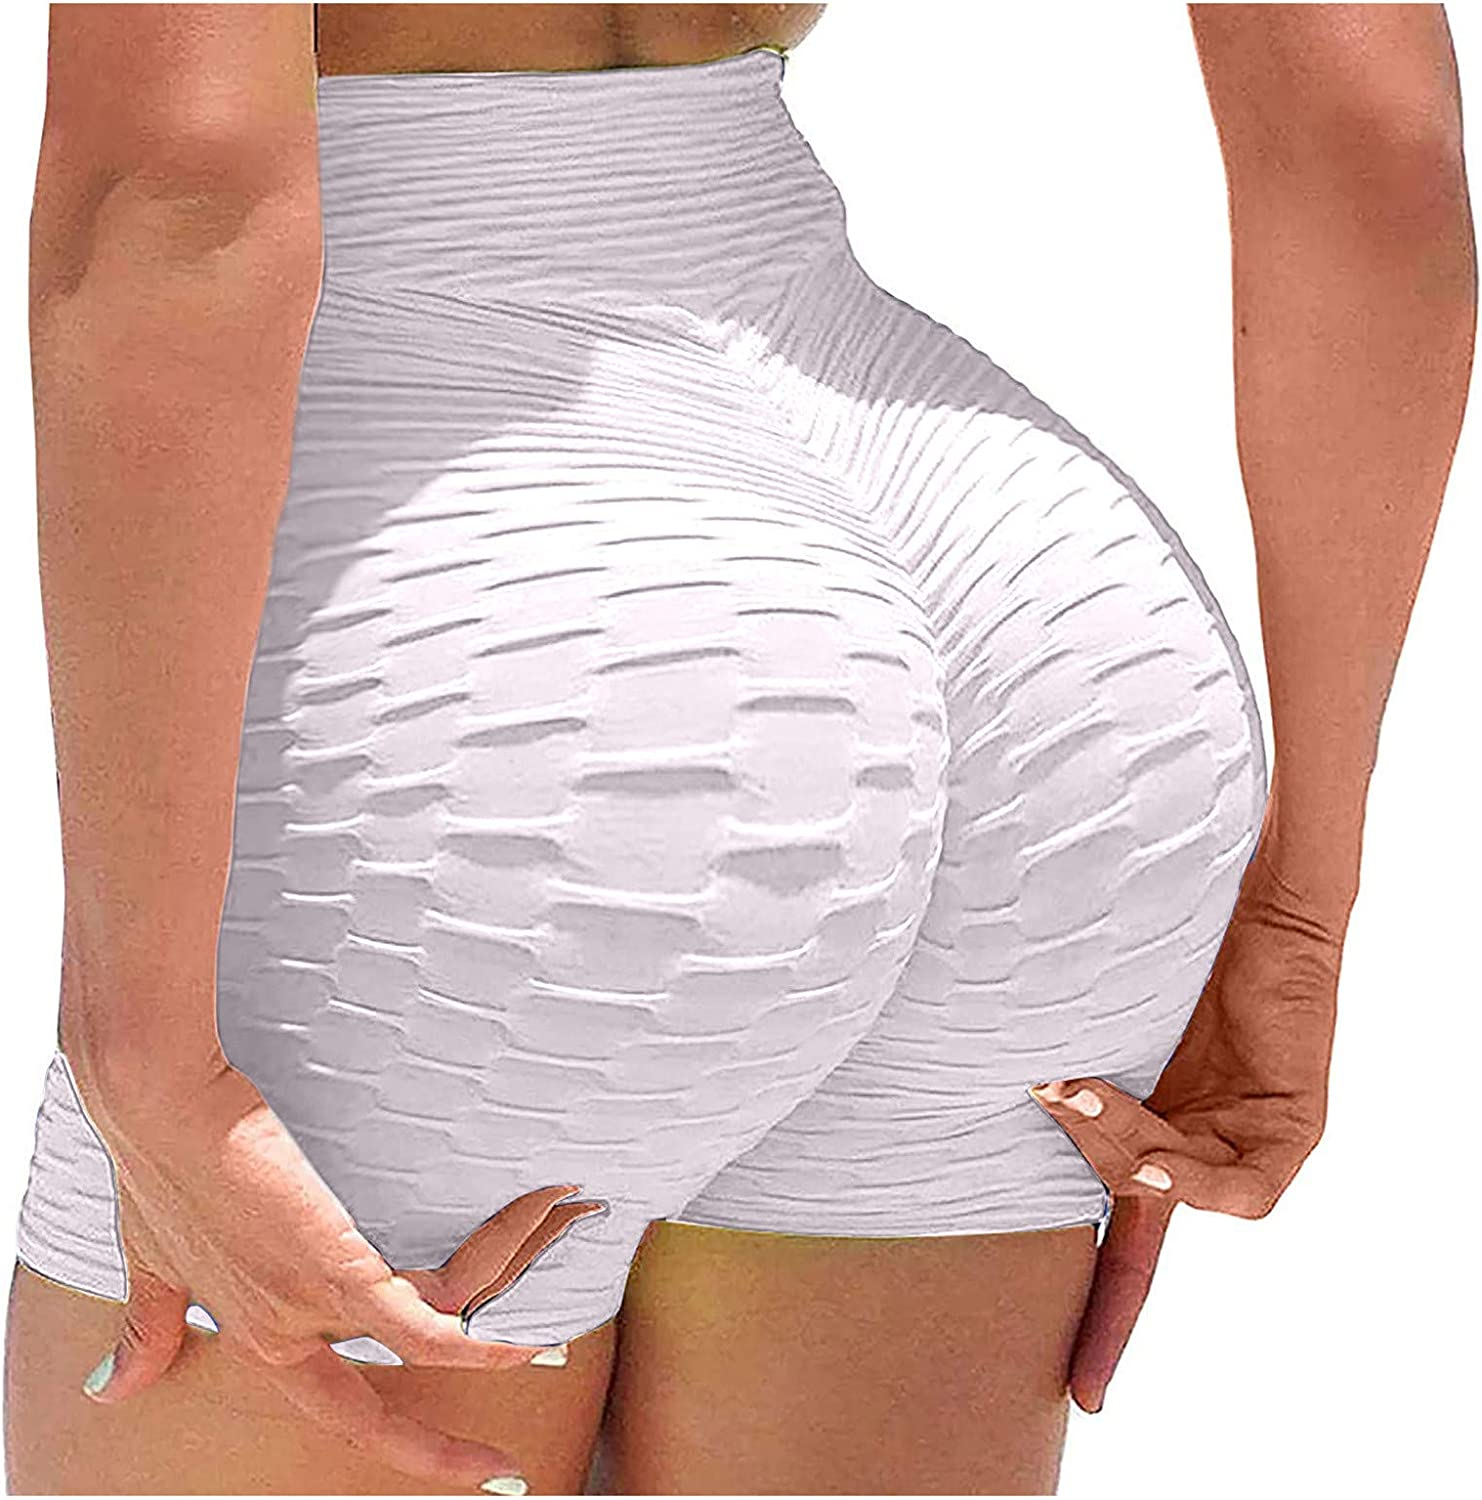 2 Pack Athletic Shorts for Women,Women Gym Shorts Butt Lifting Ruched Yoga Booty Running Short Tummy Control Leggings High Waisted Pants